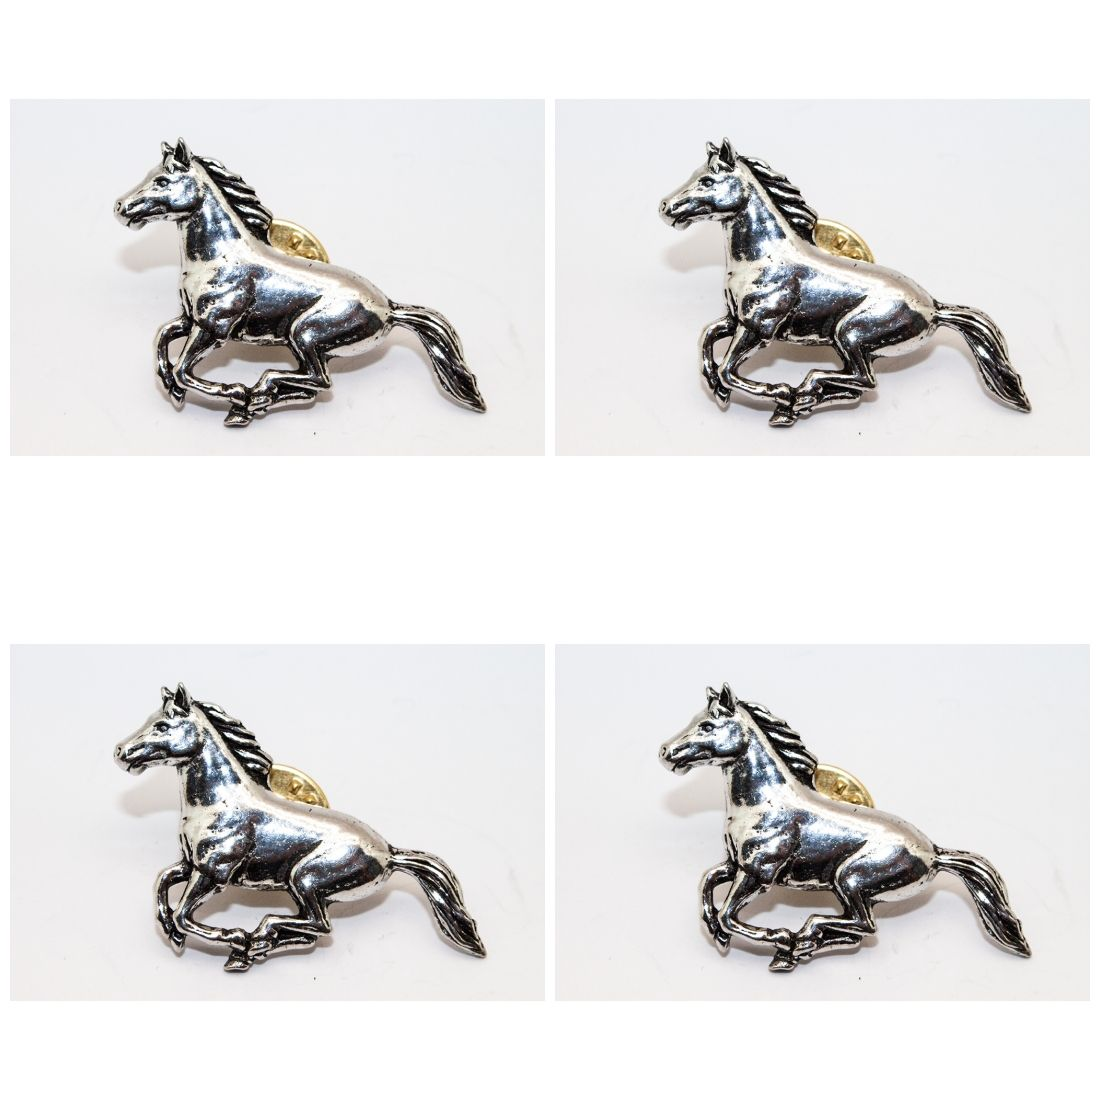 4x Pin Anstecker Badge Pferd im Galopp, 2,6x4,1cm